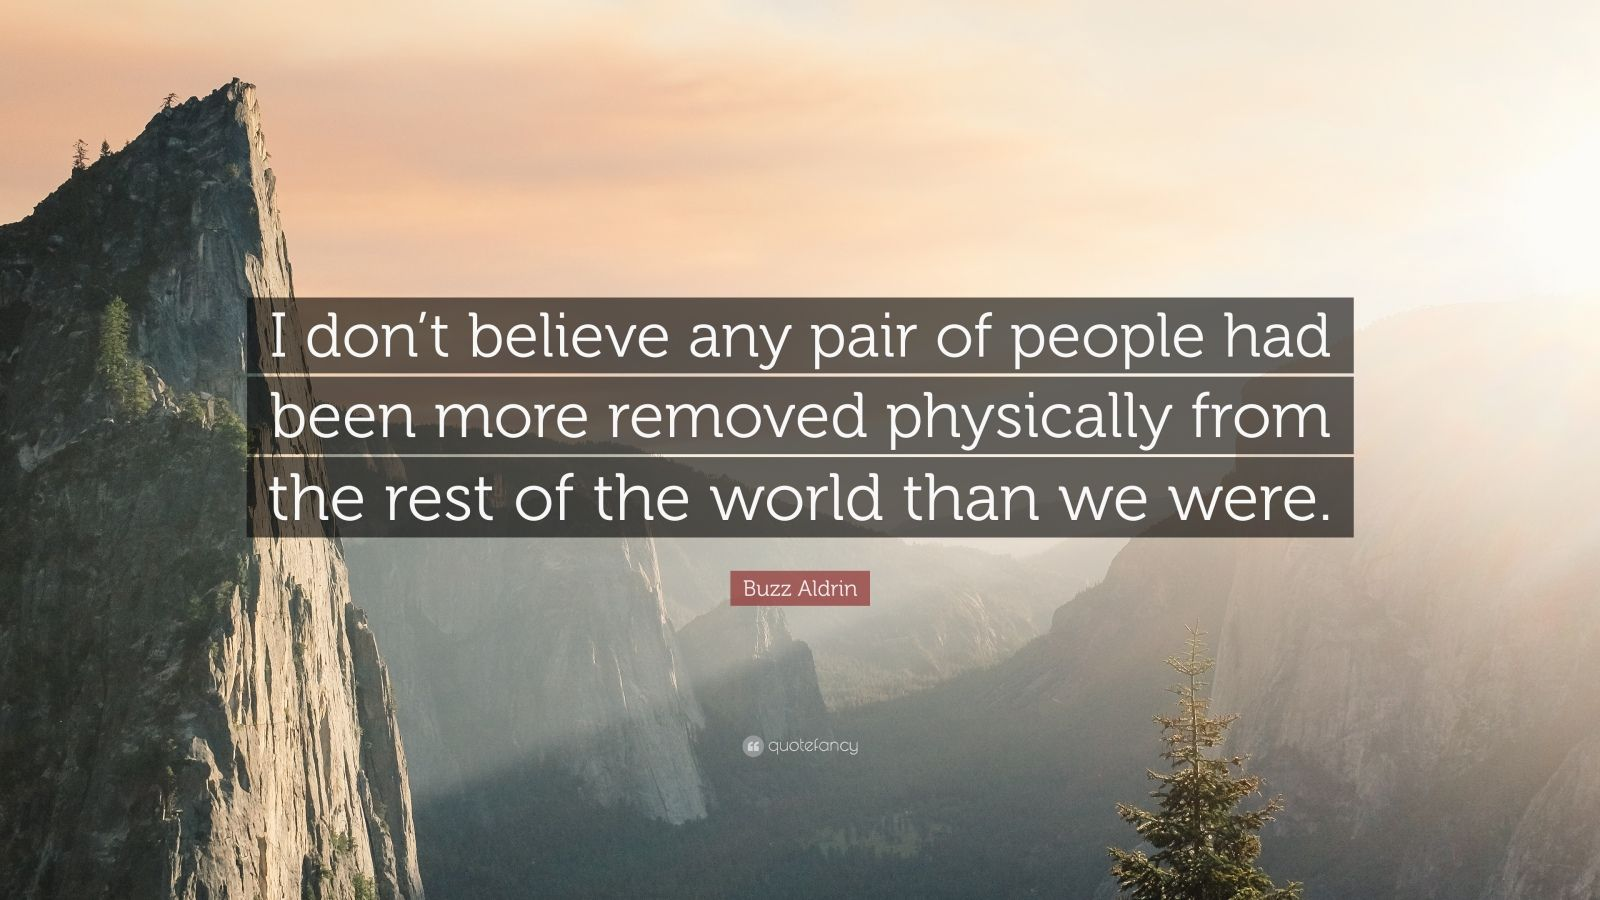 """Buzz Aldrin Quote: """"I don't believe any pair of people had been more removed physically from the rest of the world than we were."""" (7 wallpapers) - QuotefancyBuzz Aldrin Quote: """"I don't believe any pair of people had been more removed physically from the rest of the world than we were."""" - 웹"""